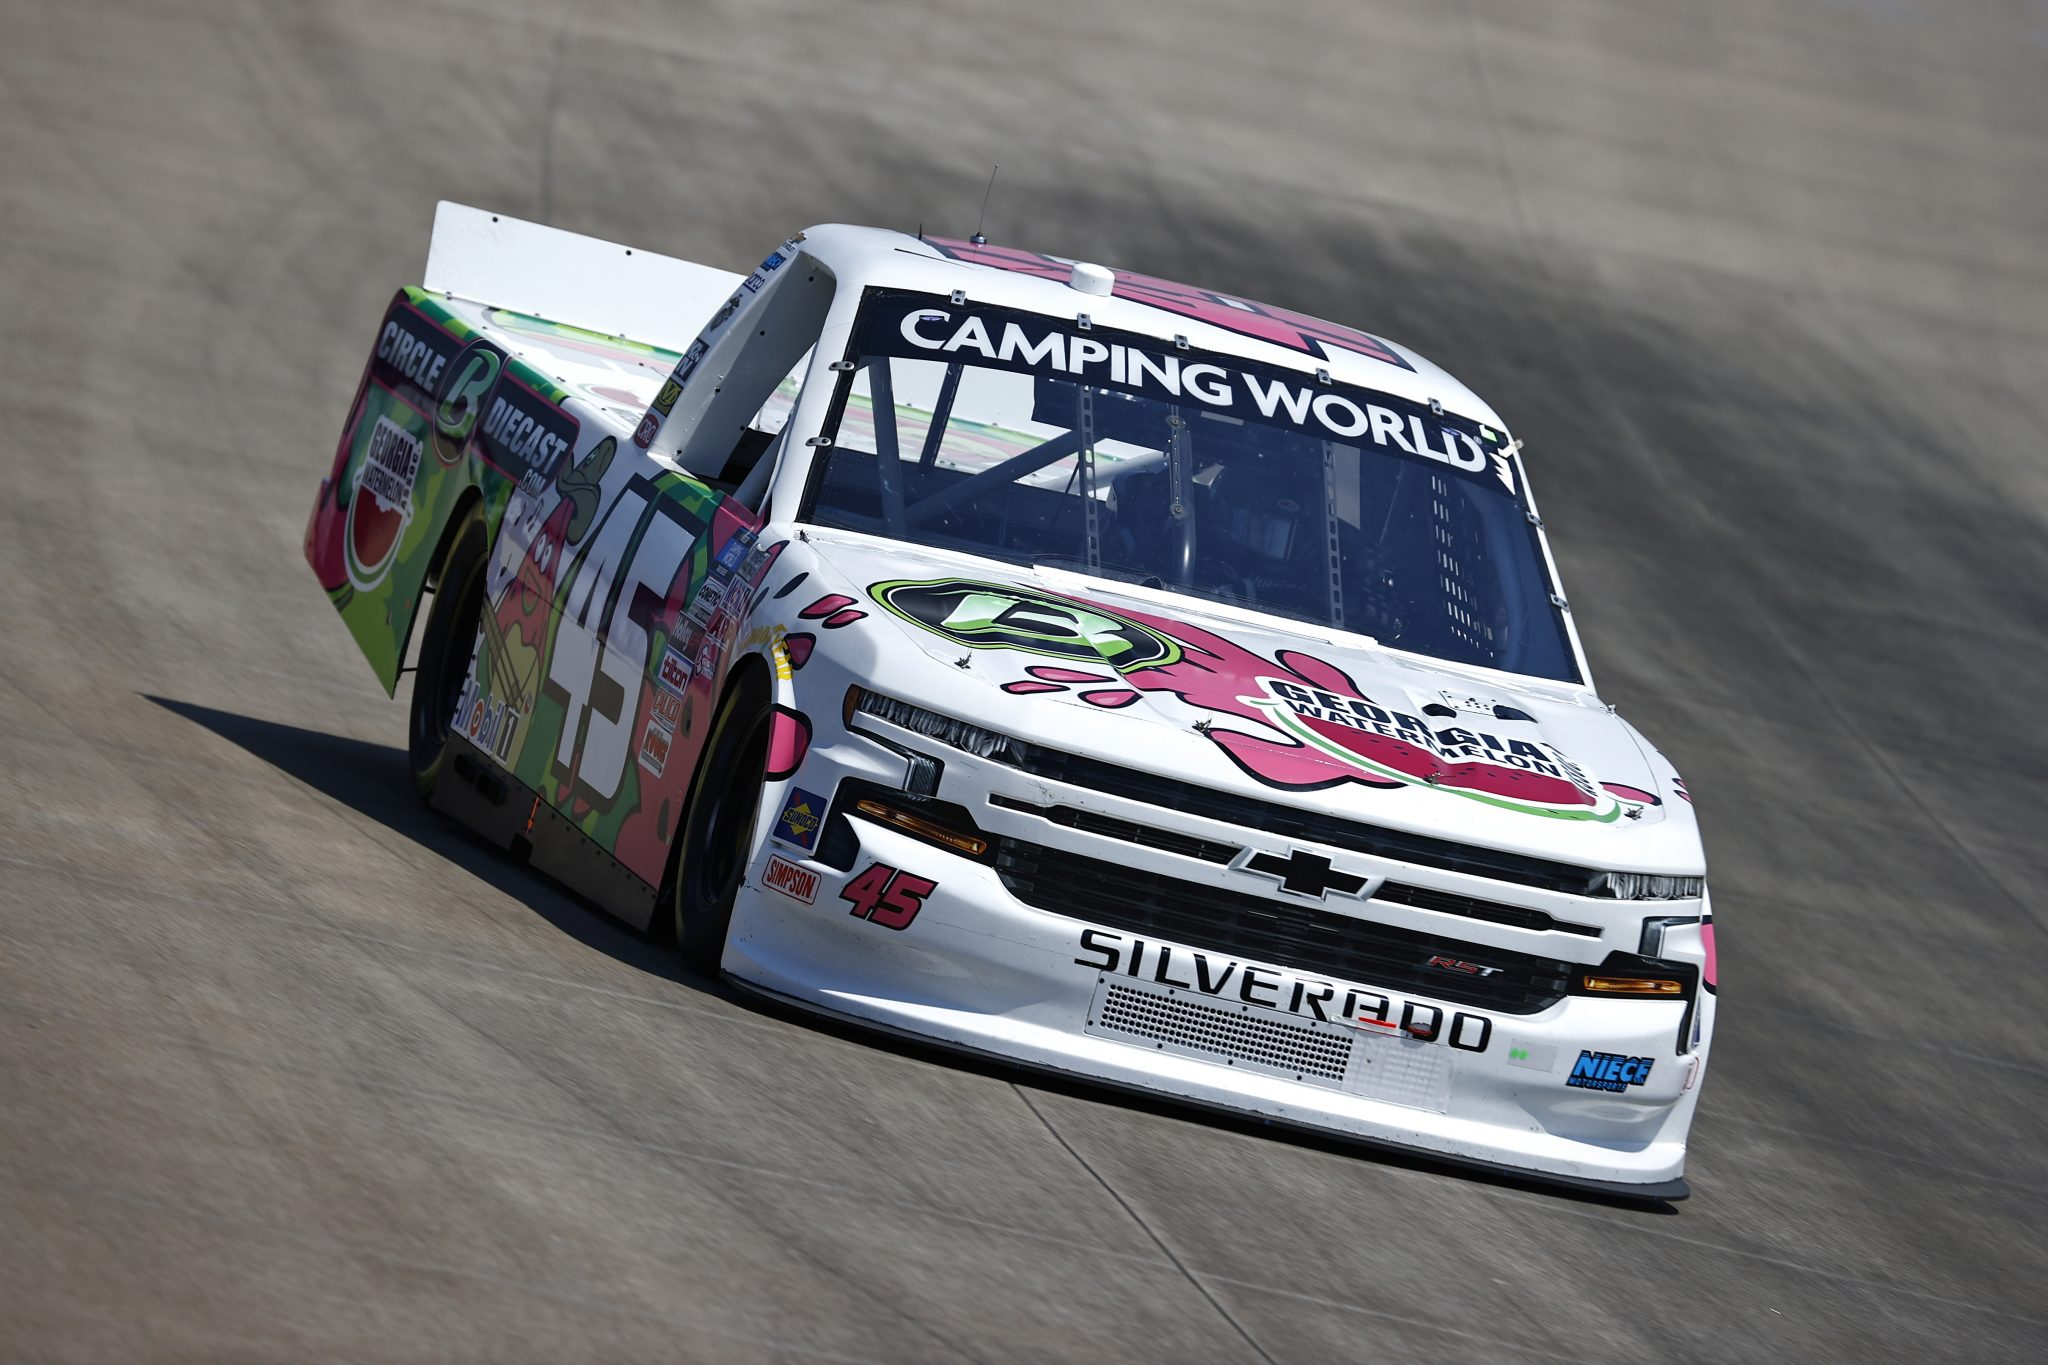 LEBANON, TENNESSEE - JUNE 18: Ross Chastain, driver of the #45 GA Watermelon/Circle B Diecast Chevrolet, drives during practice for the NASCAR Camping World Truck Series Rackley Roofing 200 at Nashville Superspeedway on June 18, 2021 in Lebanon, Tennessee. (Photo by Jared C. Tilton/Getty Images) | Getty Images